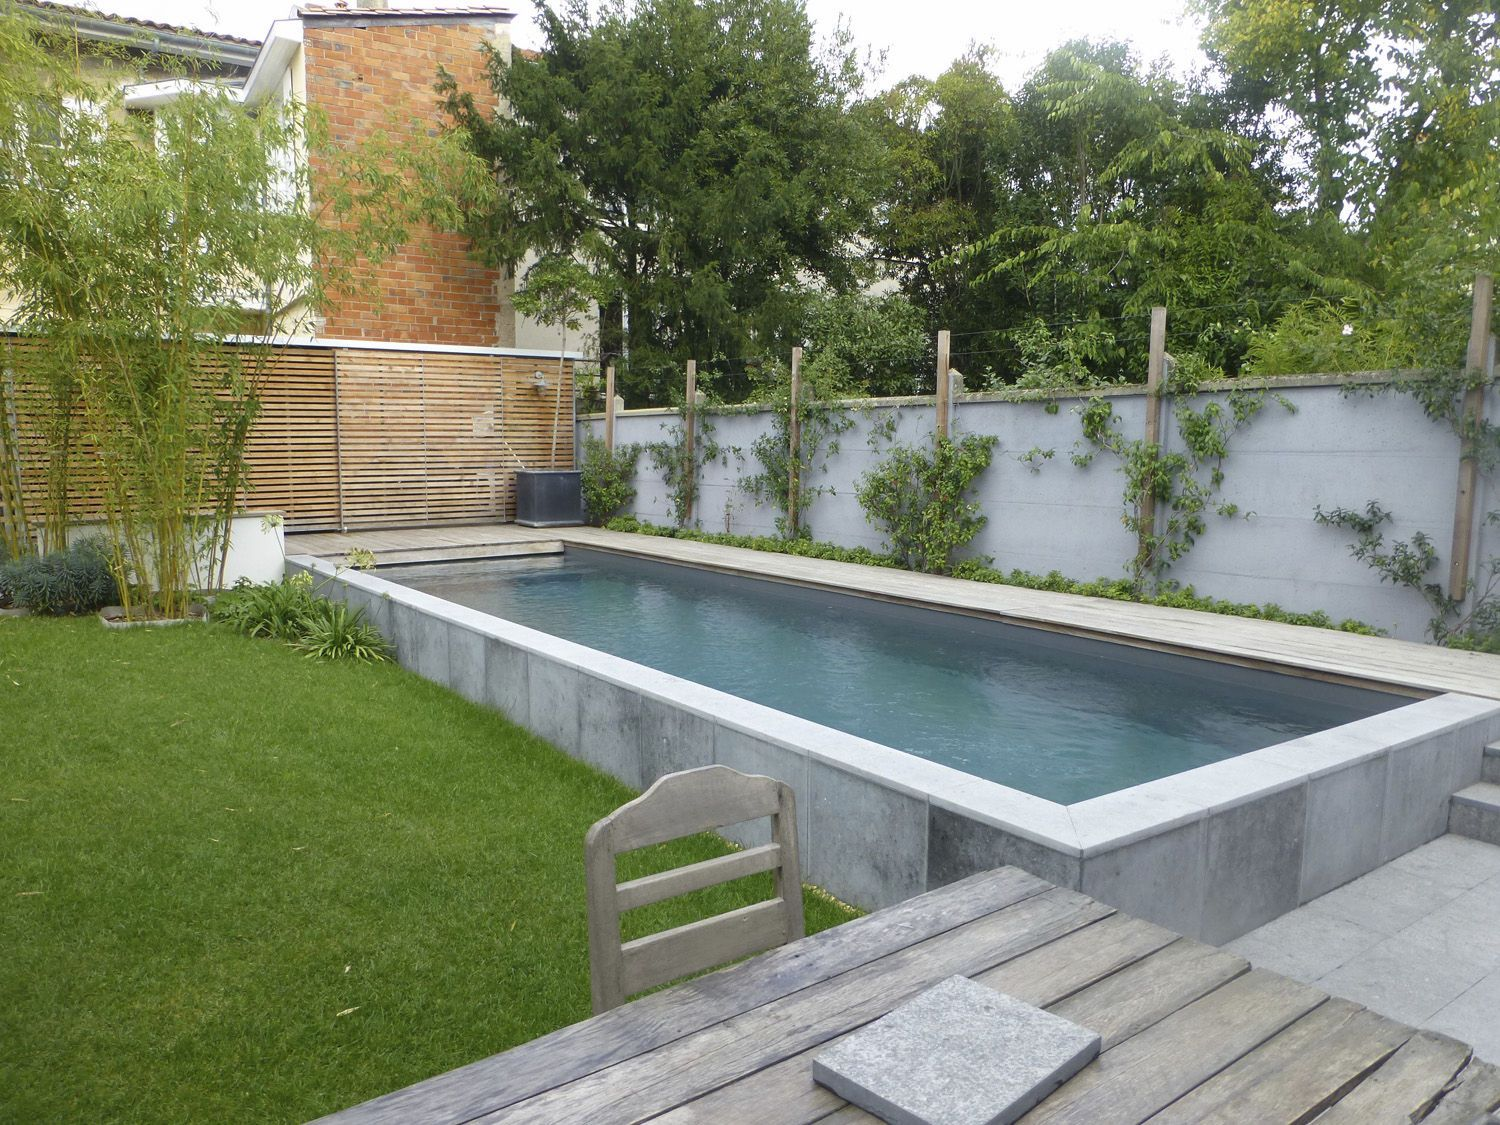 Semi-inground rectangular pool surrounded by concrete ...